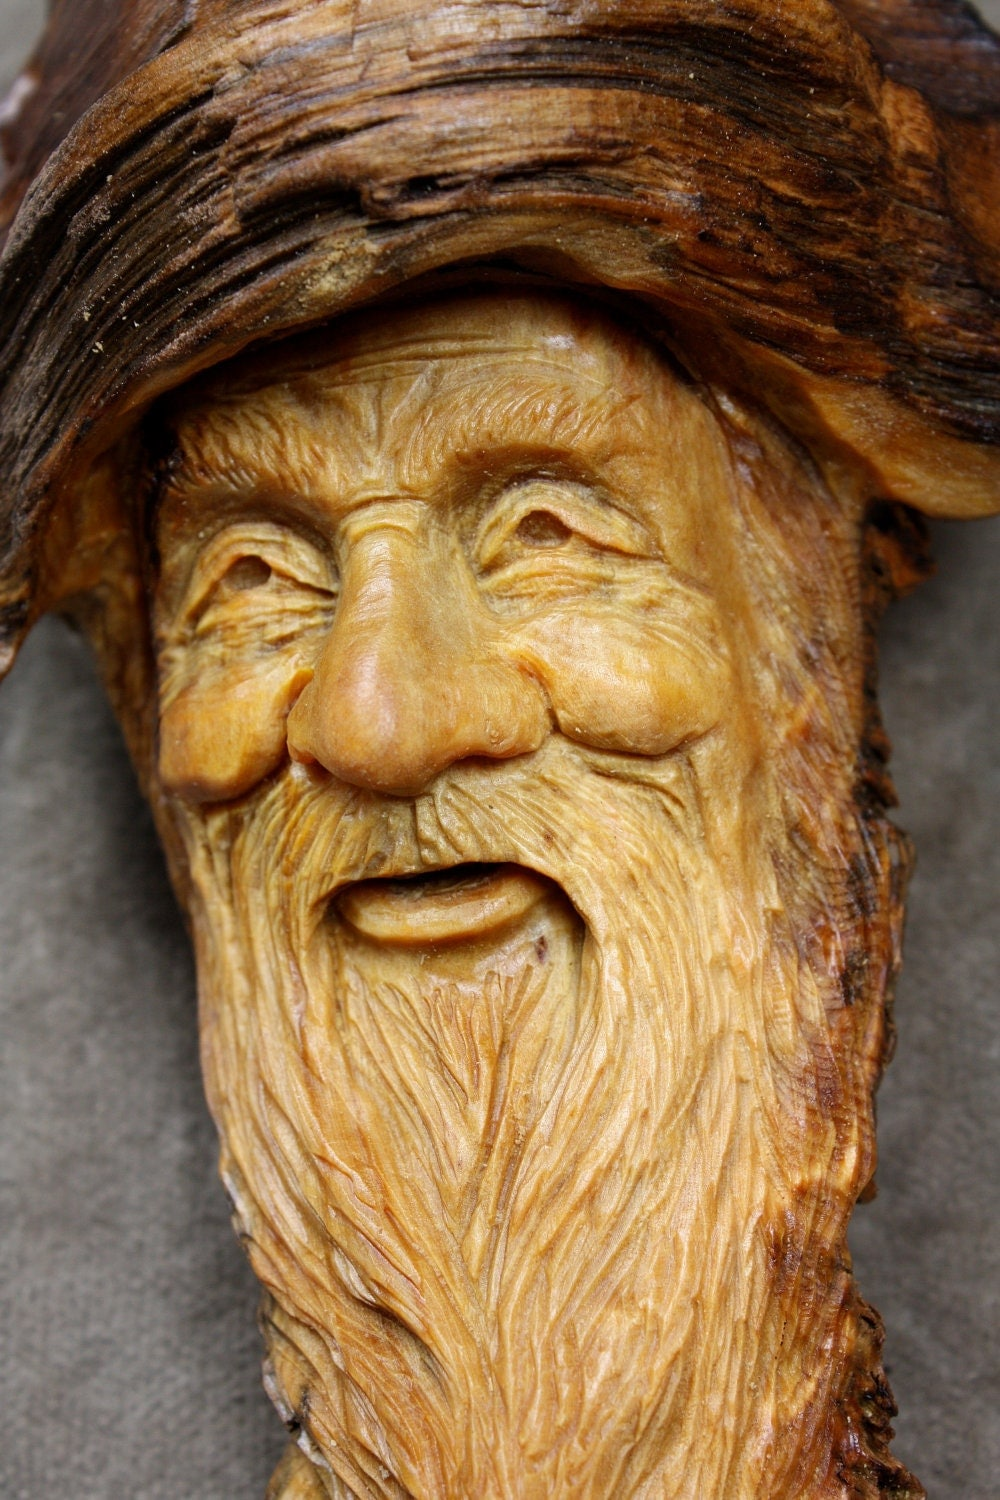 Handmade wood carving of a spirit on etsy carved by gary